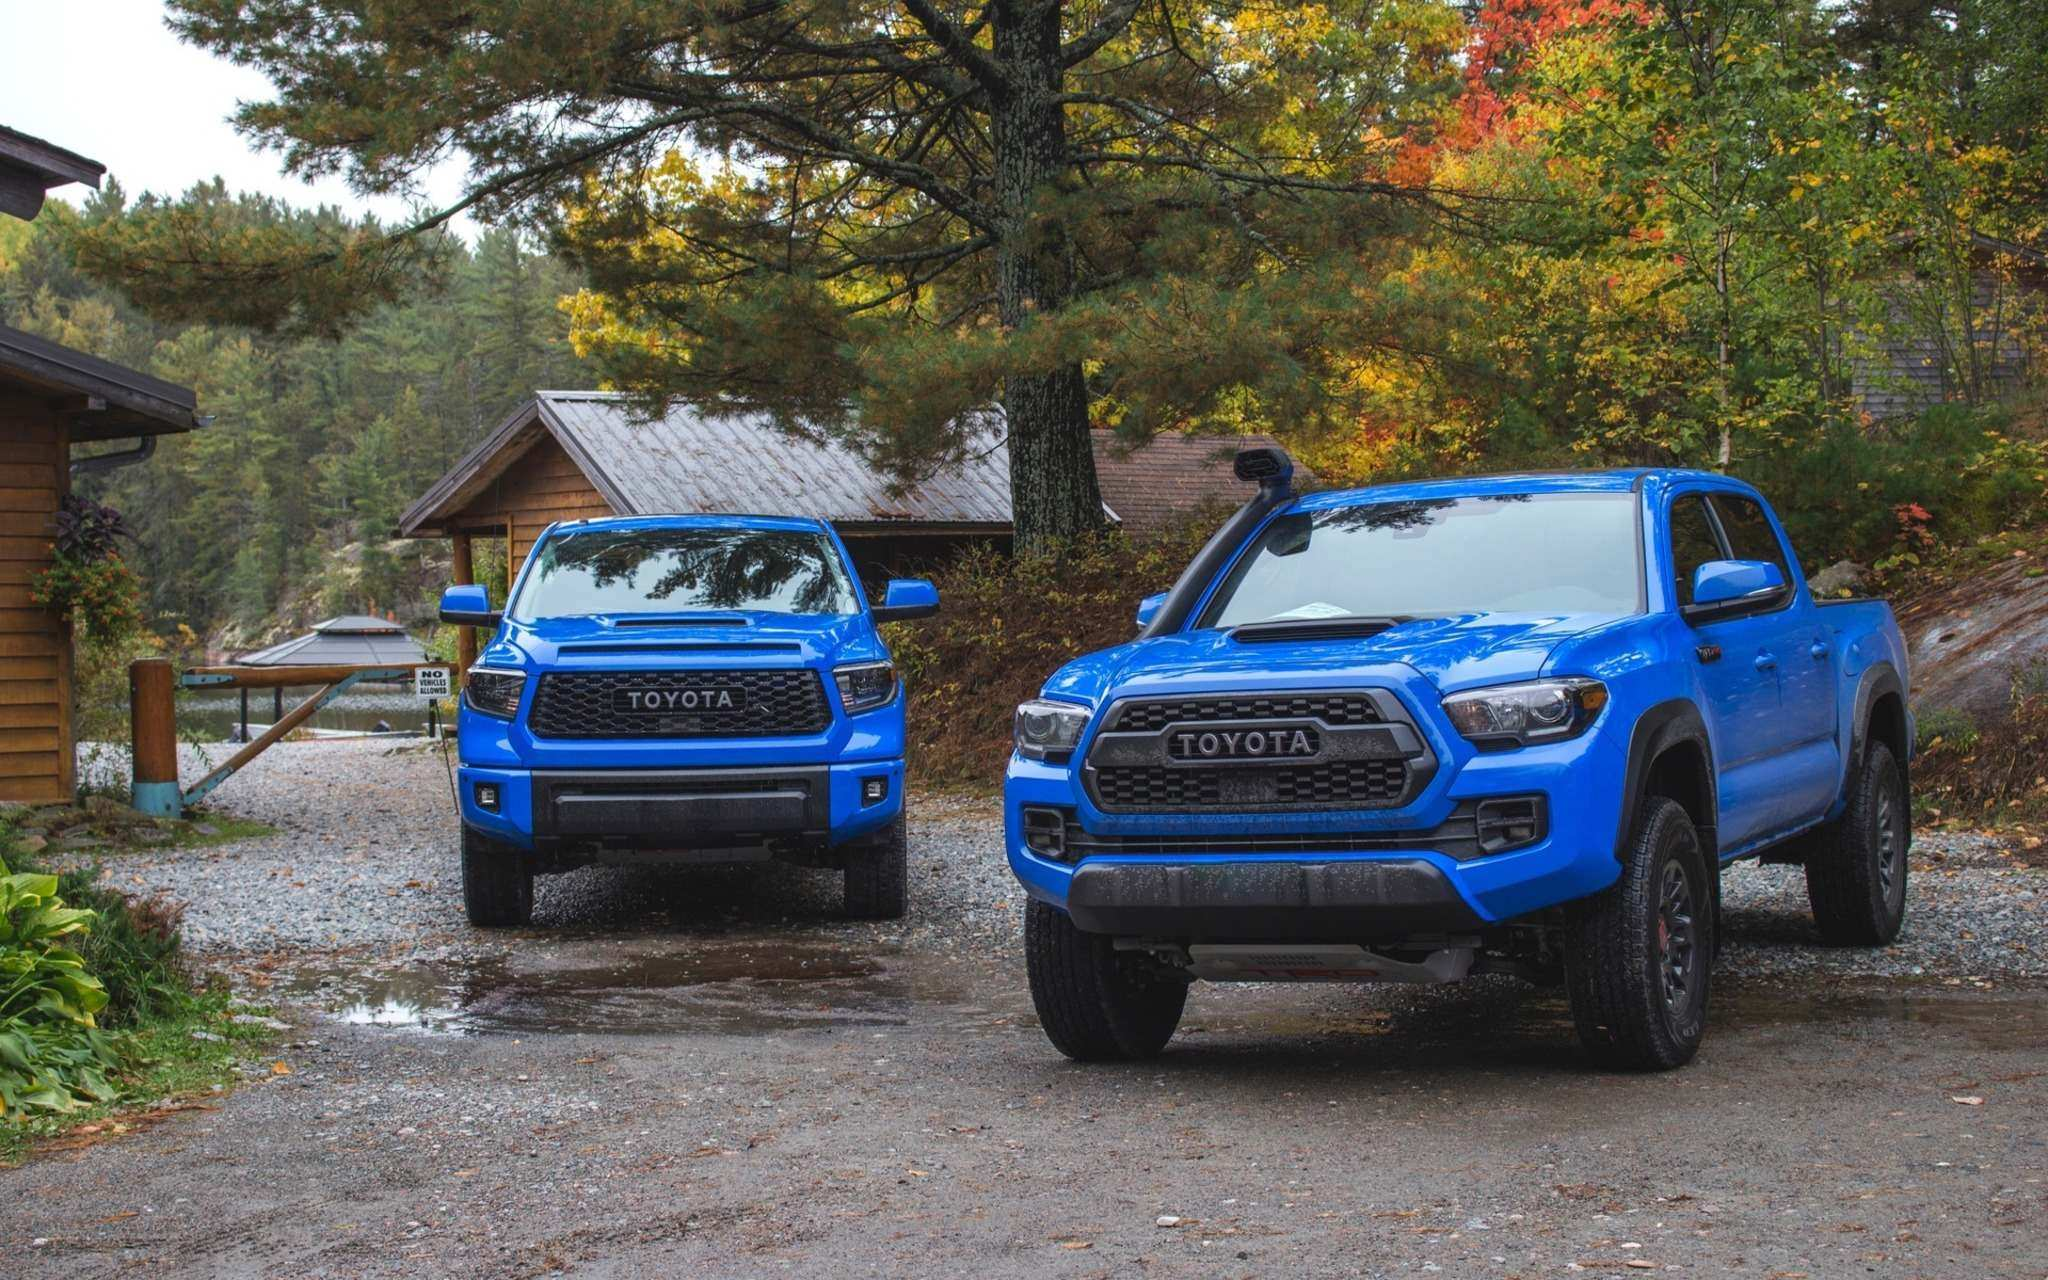 94 Gallery of 2020 Toyota Tundra Voodoo Blue Configurations by 2020 Toyota Tundra Voodoo Blue